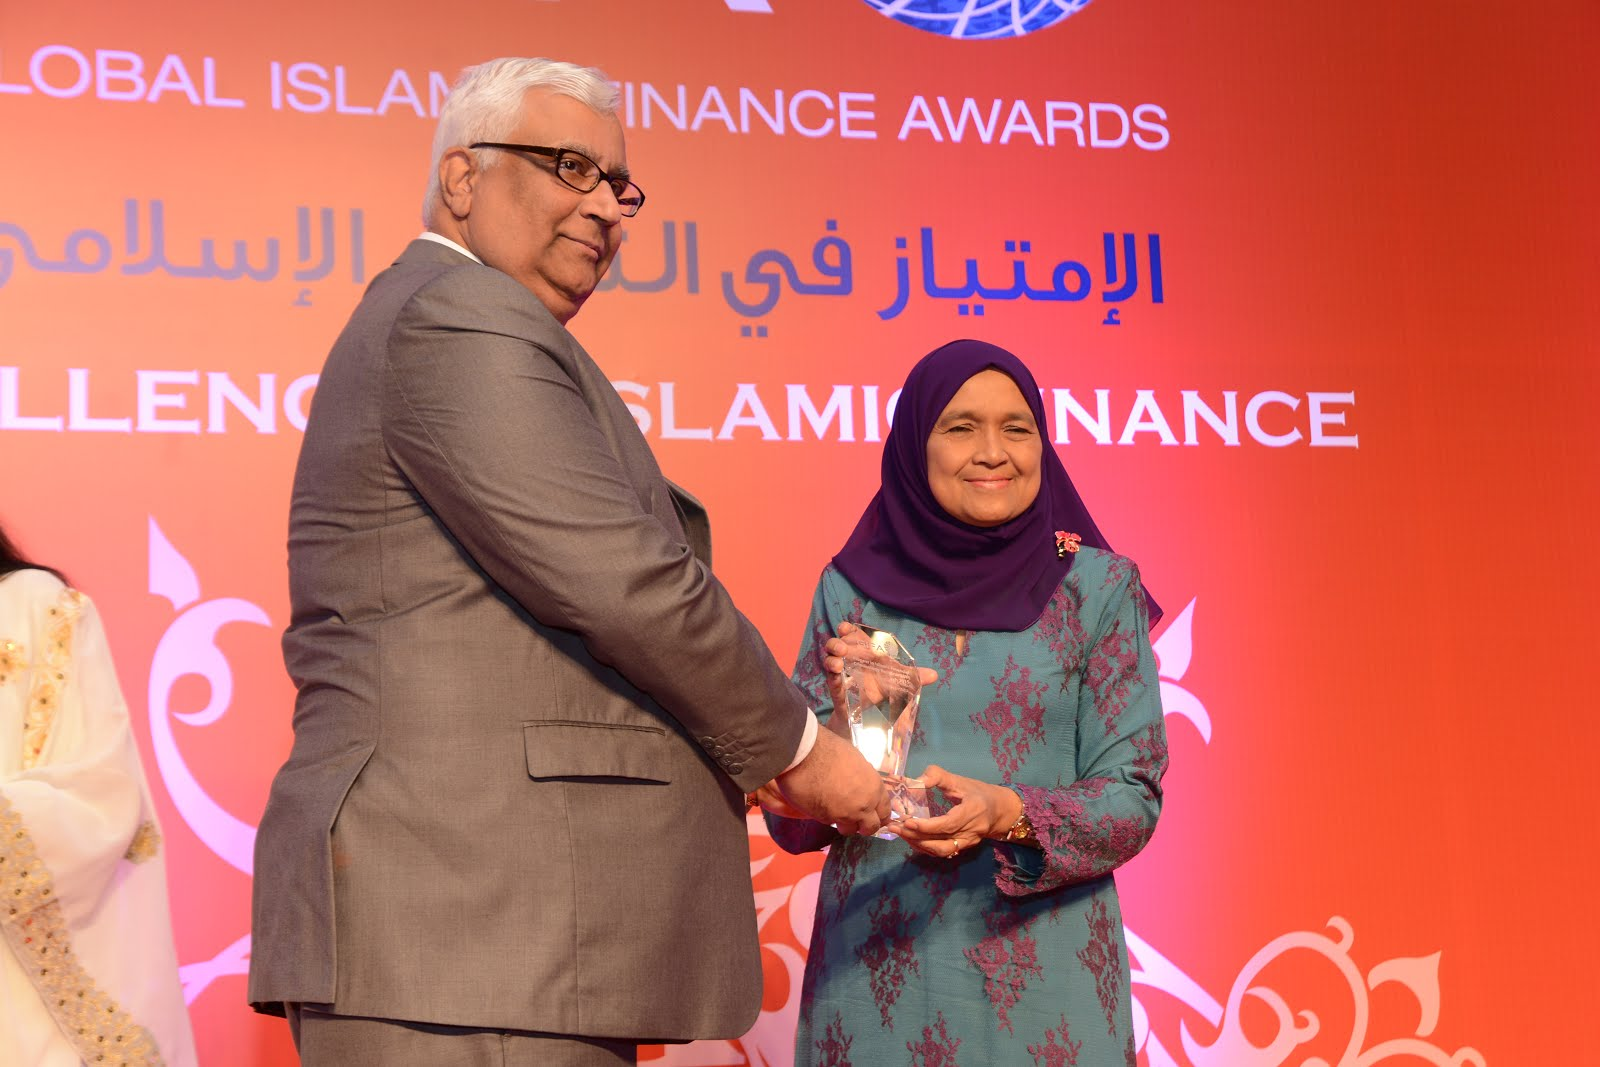 WINNER of Global Islamic Finance Awards GIFA 2015